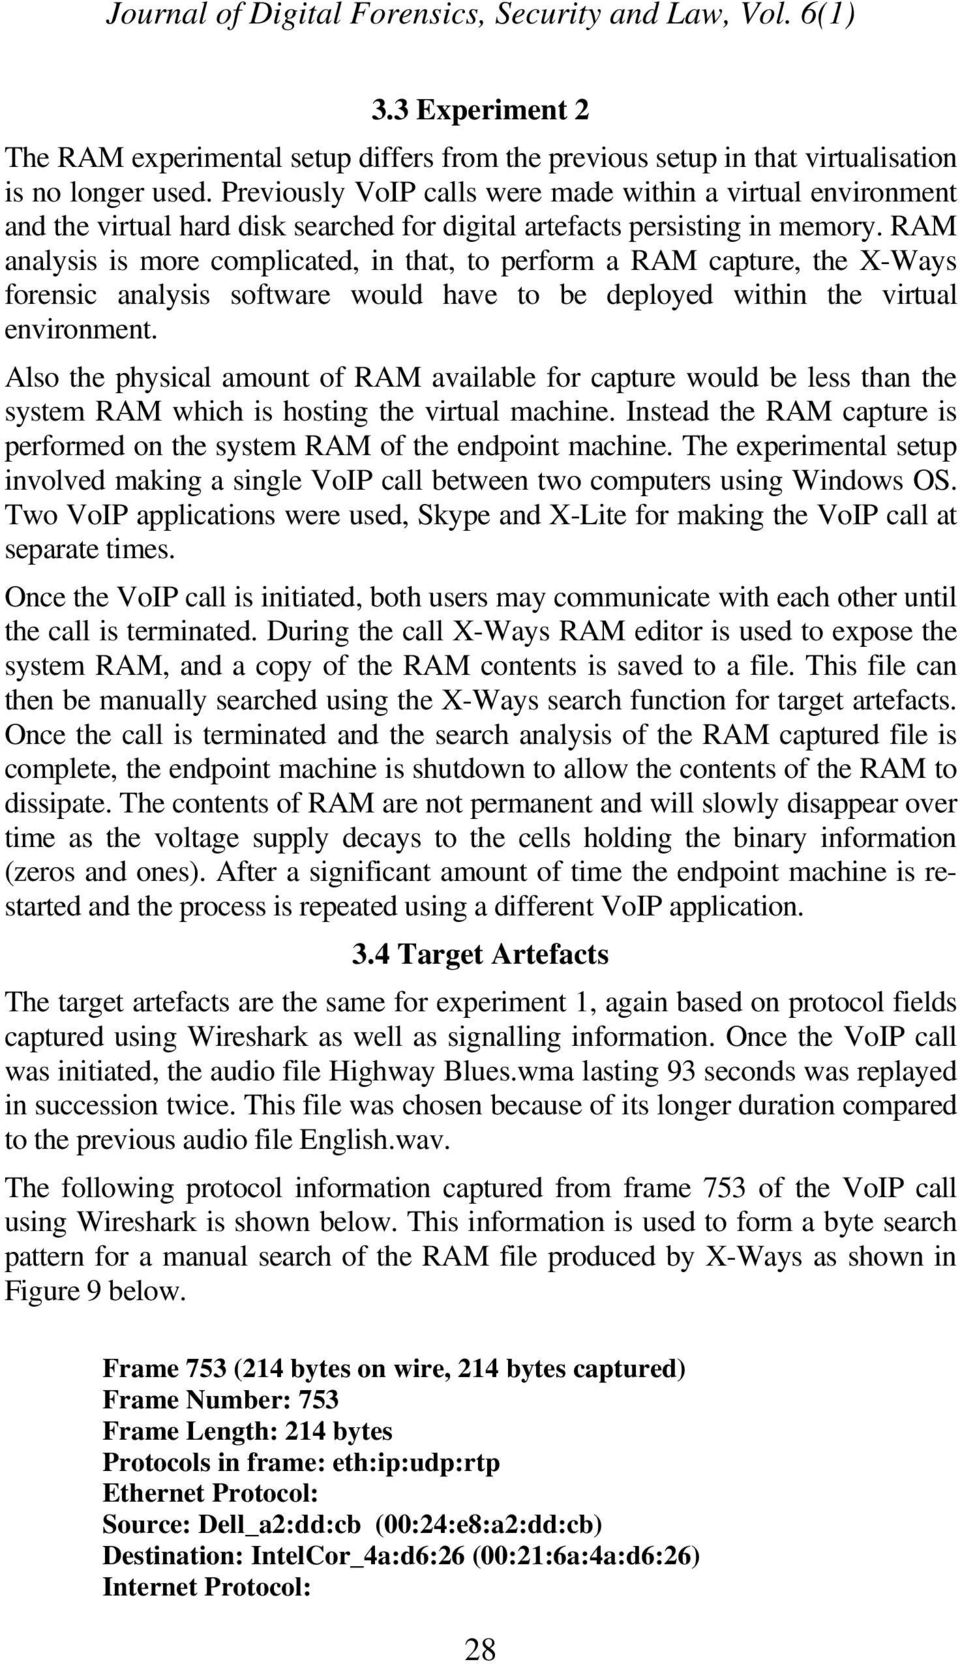 RAM analysis is more complicated, in that, to perform a RAM capture, the X-Ways forensic analysis software would have to be deployed within the virtual environment.